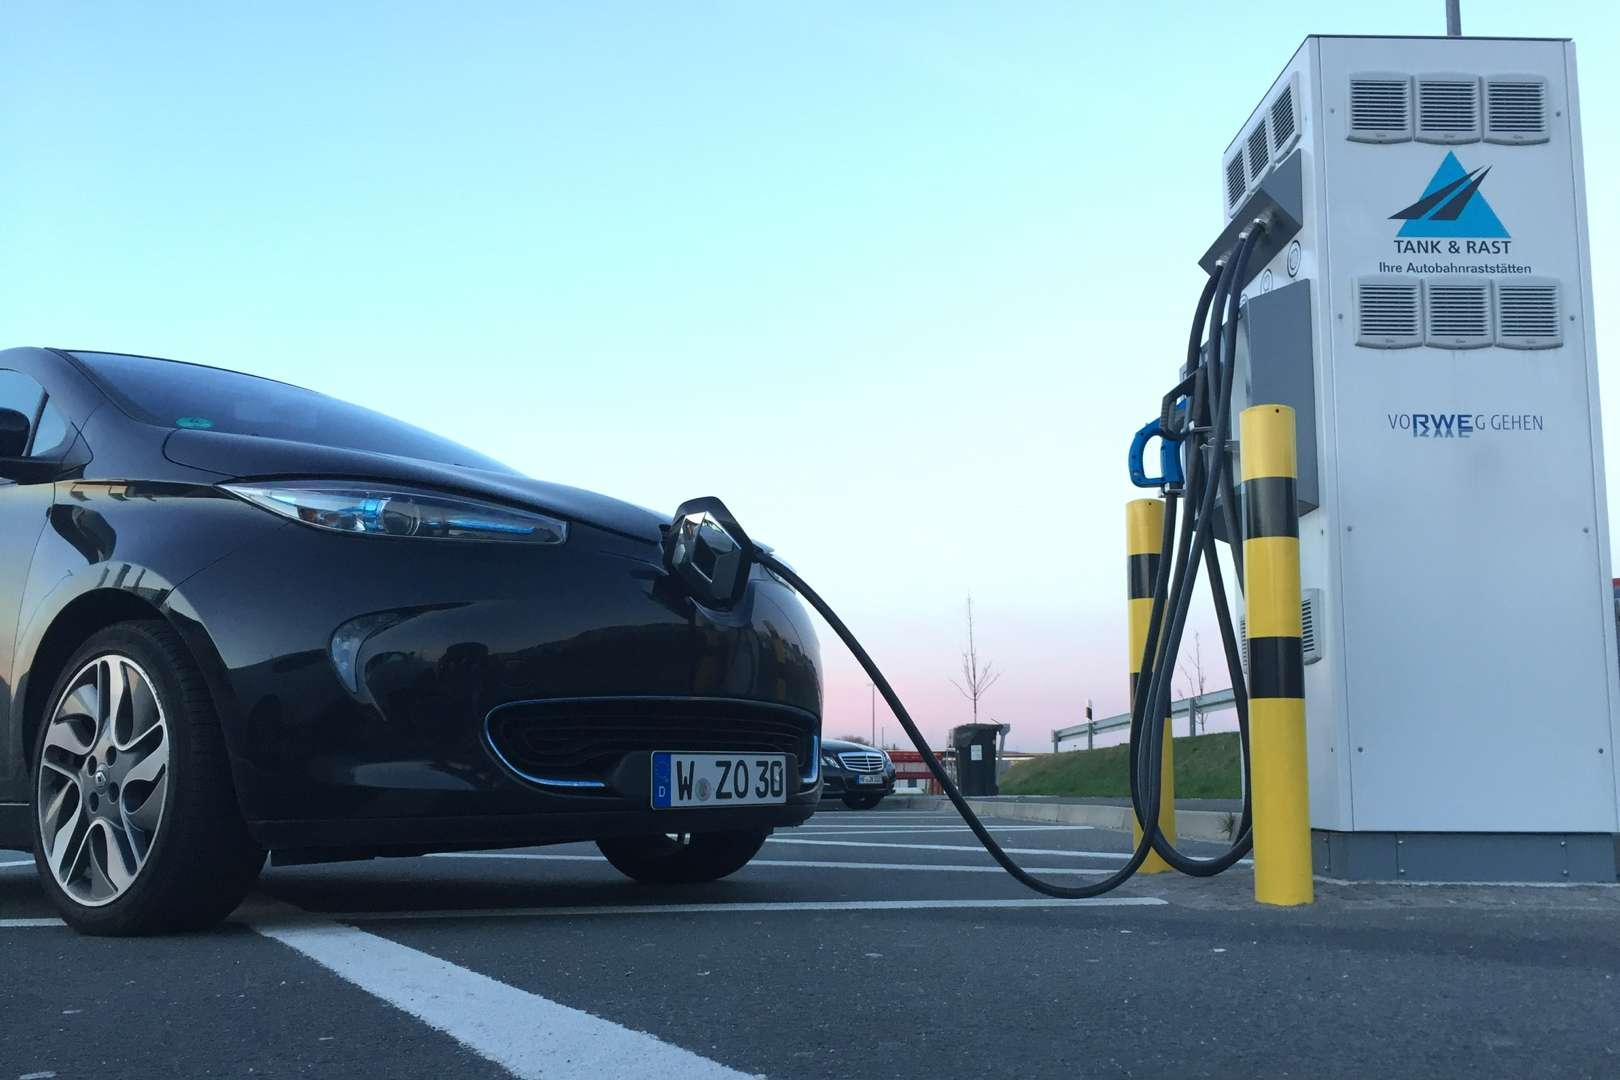 Renault_ZOE_Tank-Rast_Tripple-Charger